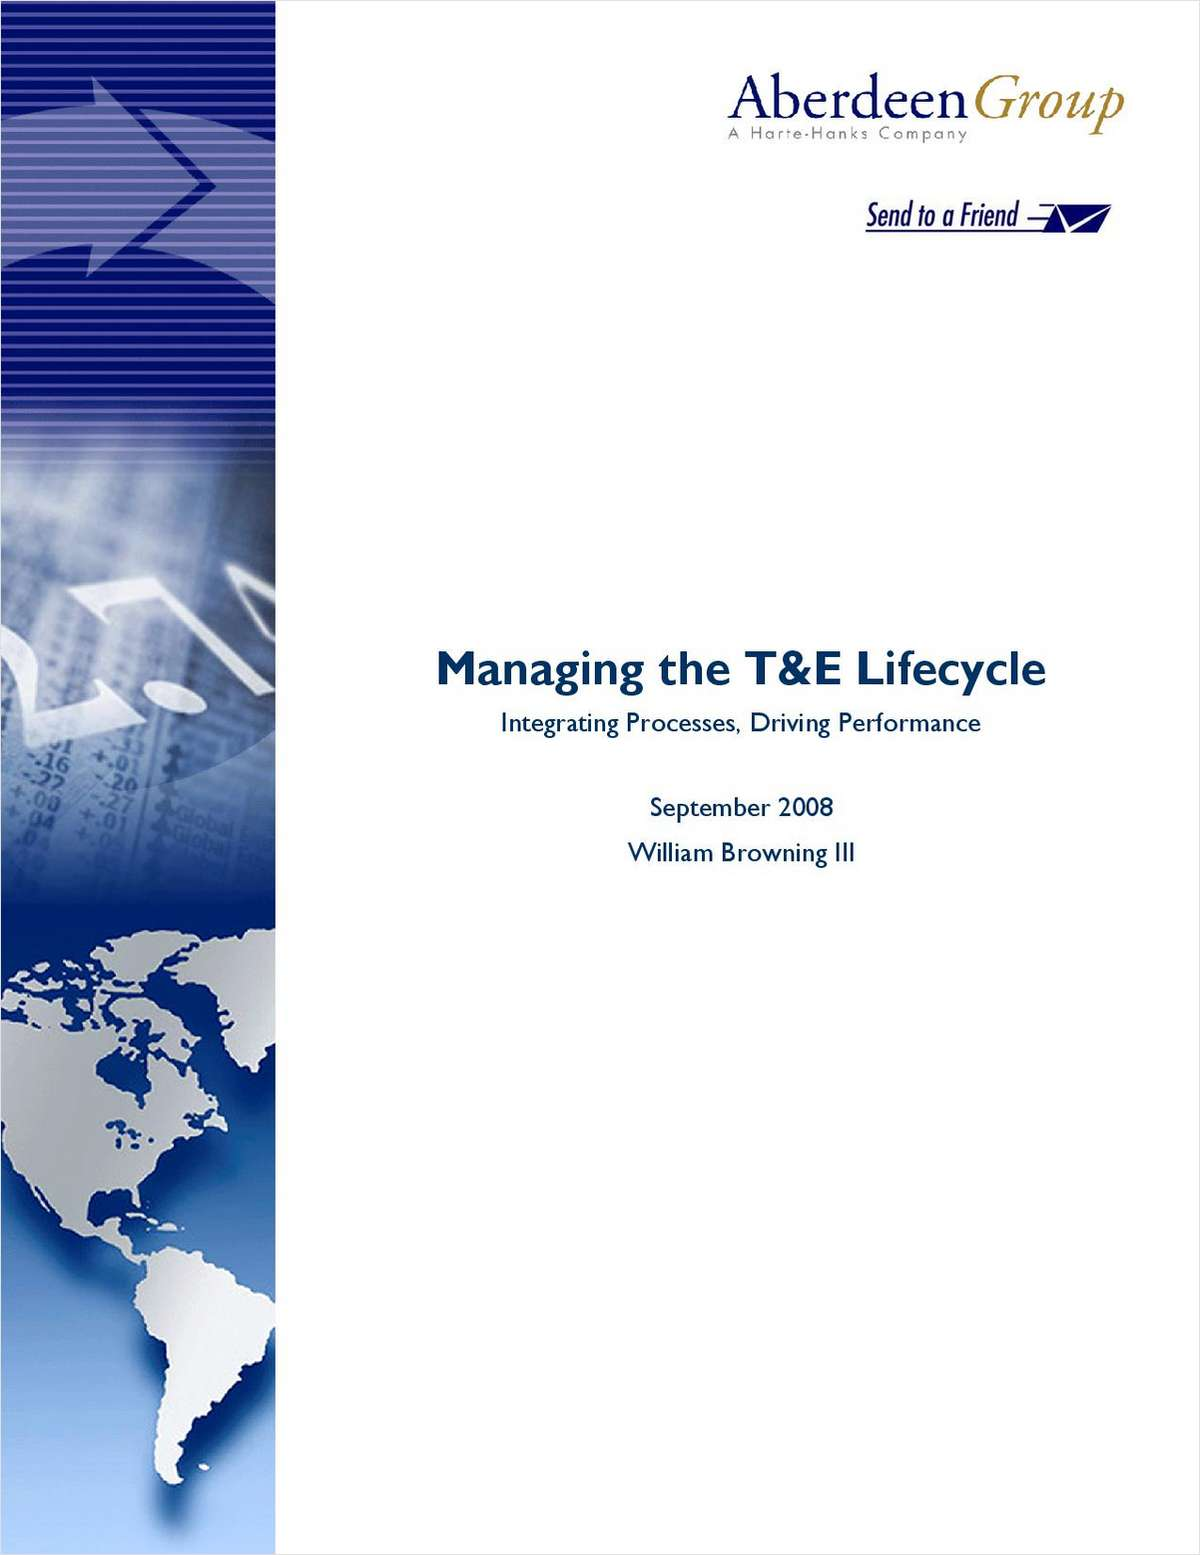 Managing the T&E Lifecycle: Integrating Processes, Driving Performance